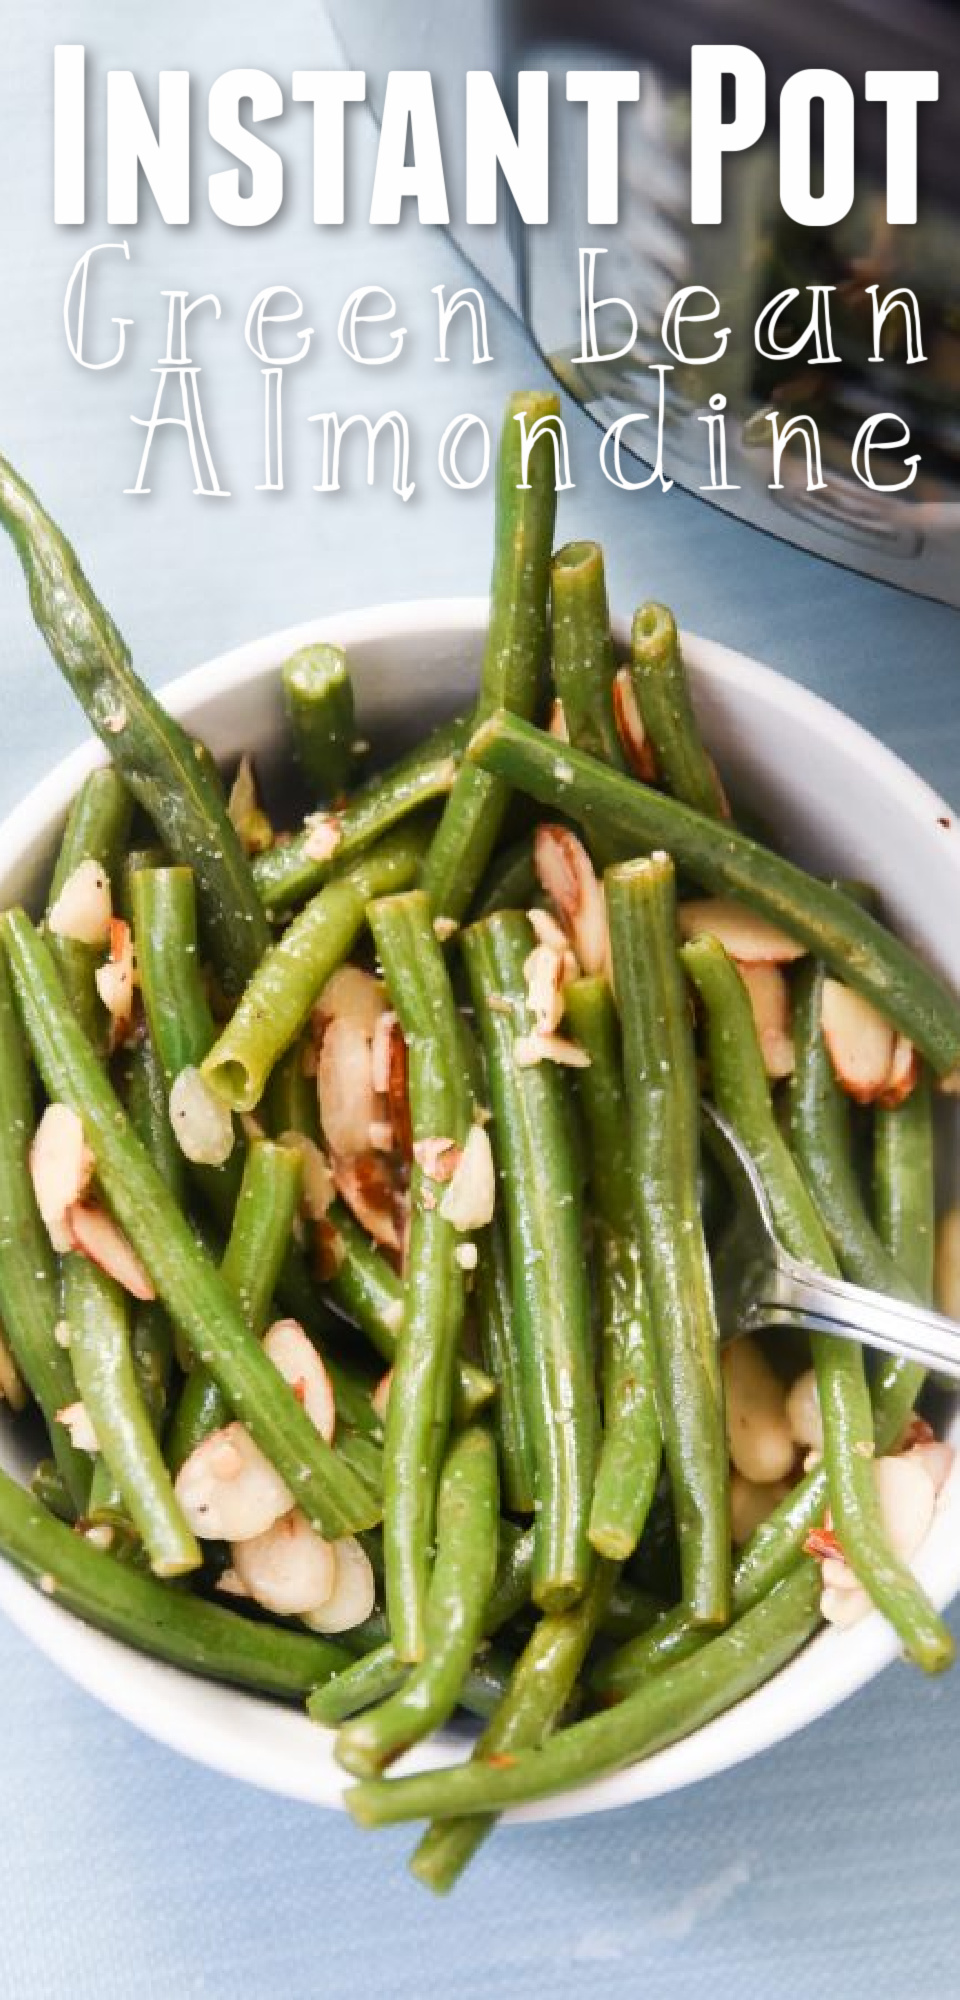 This easy Instant Pot side dish will give your dinner table a classy French twist. Try this Green Beans Almondine recipe to give your taste buds a healthy treat. via @simplysidedishes89